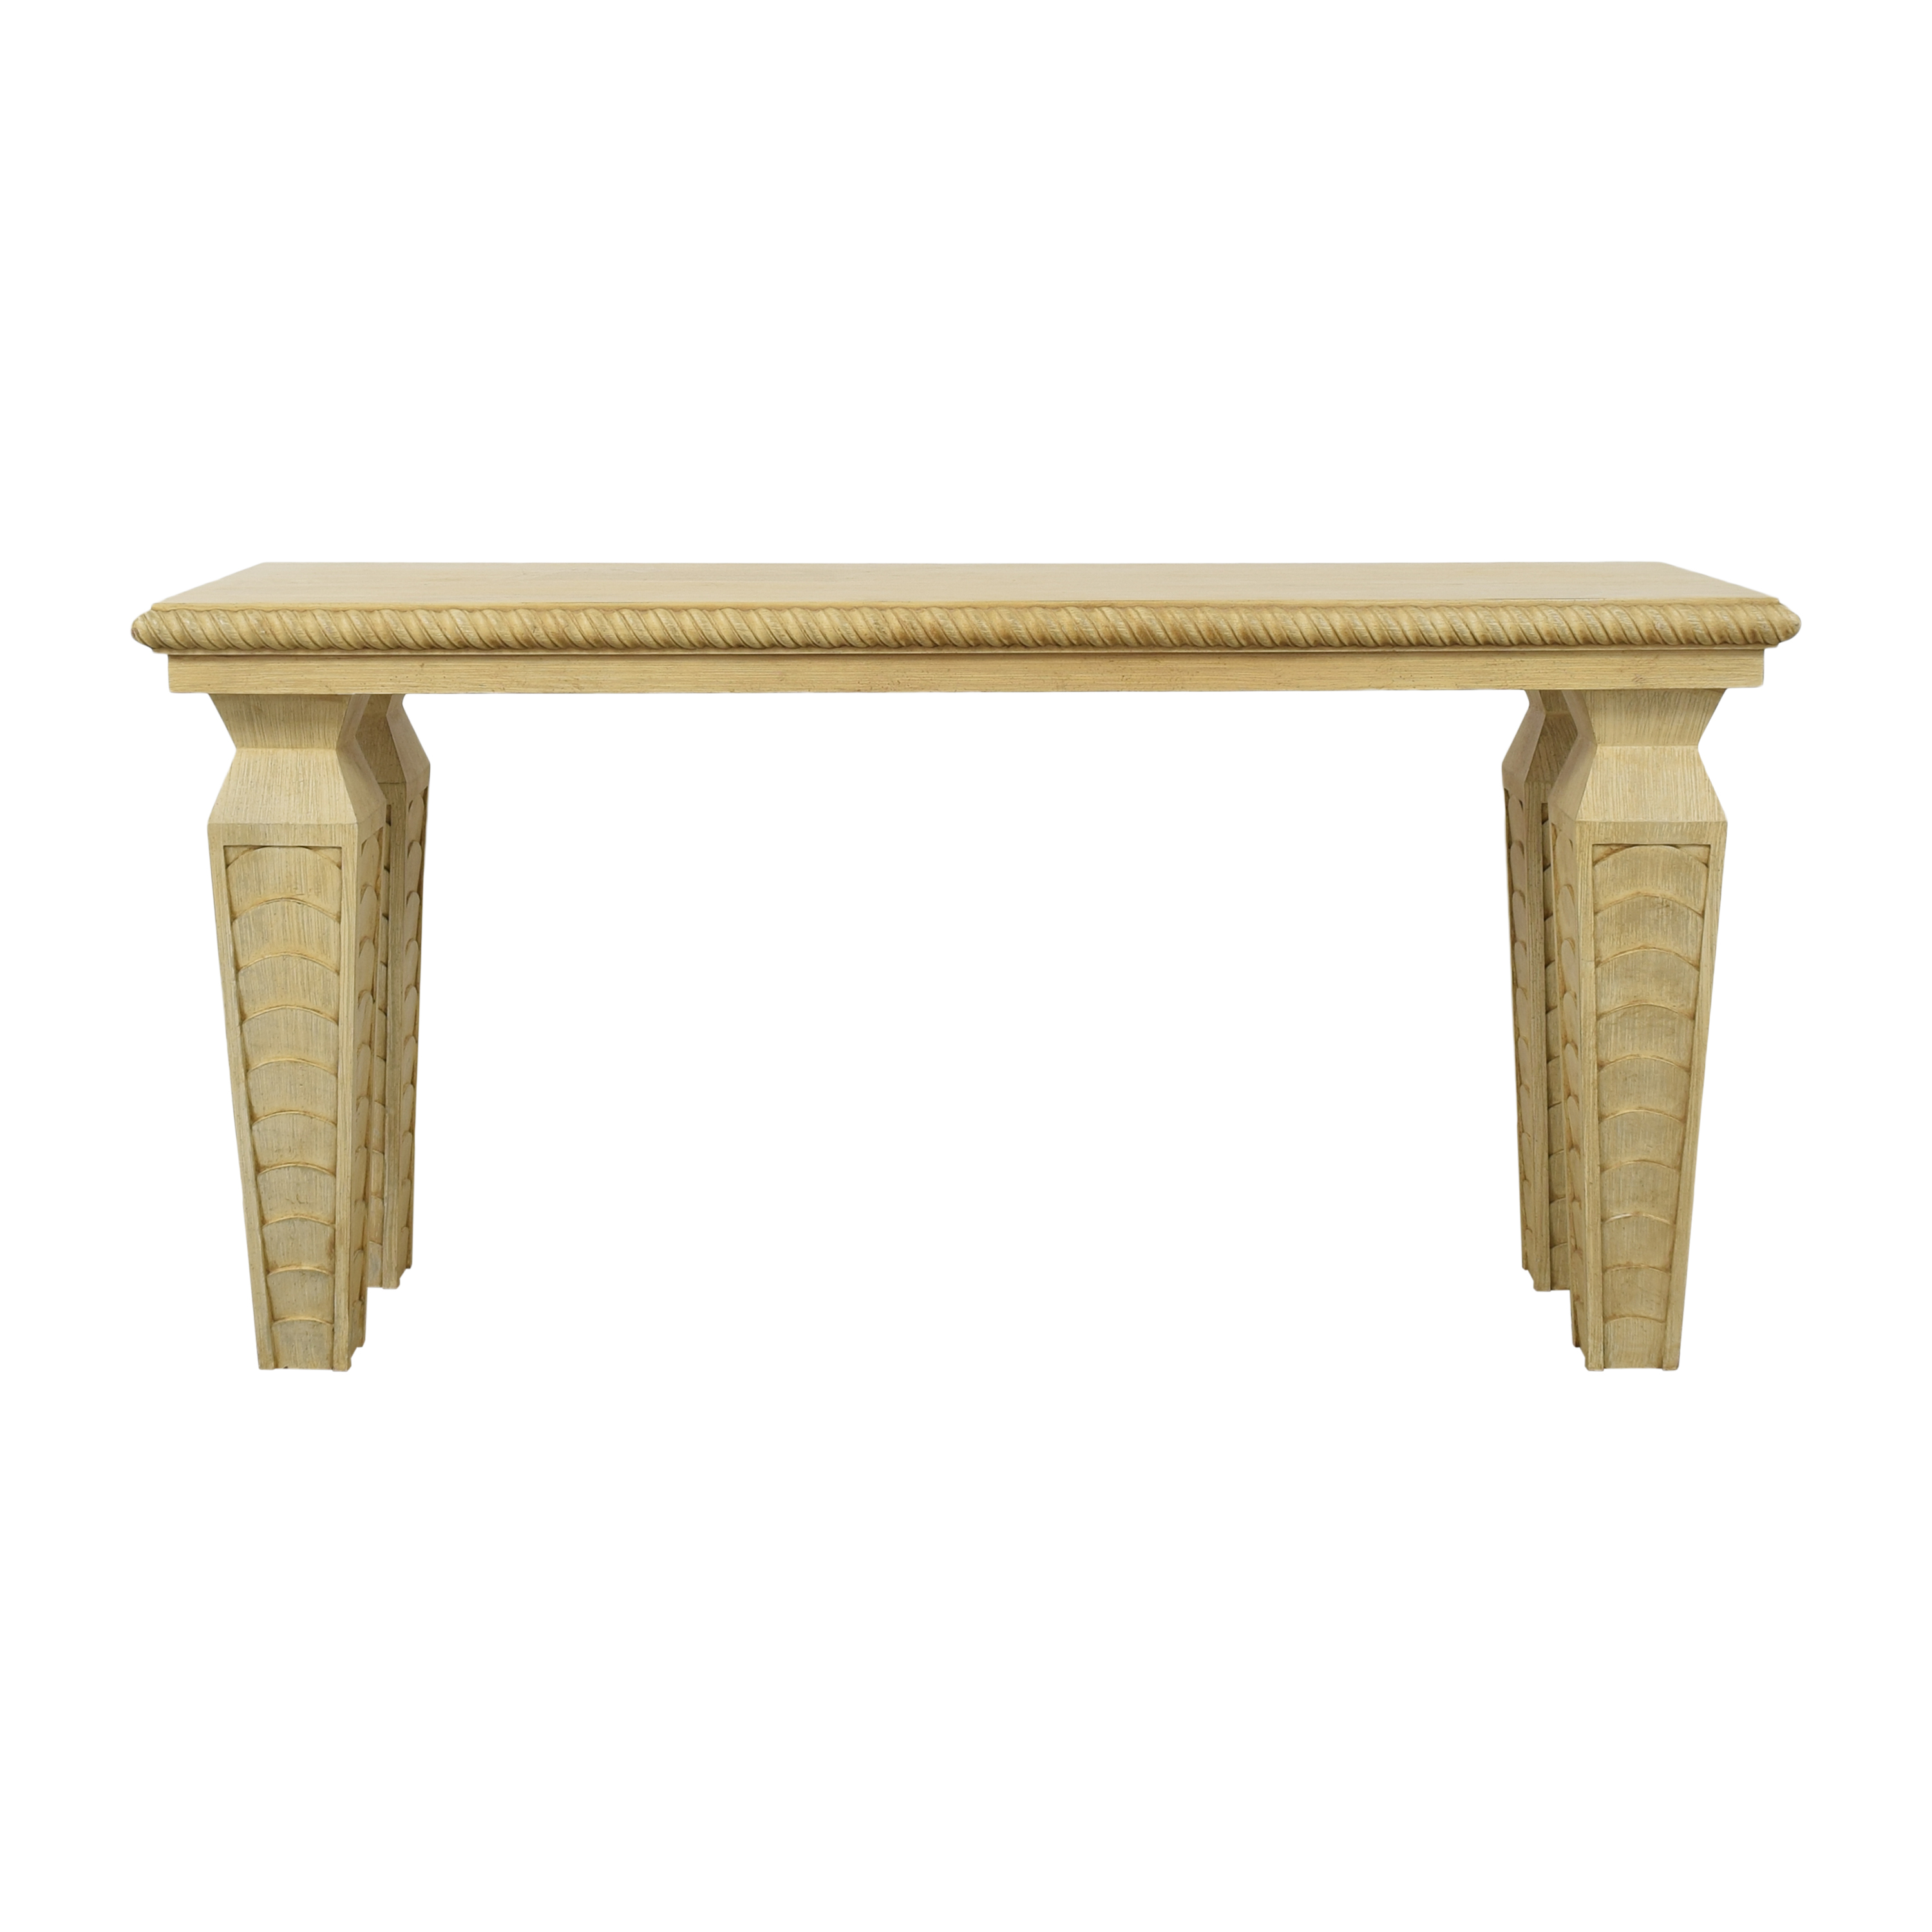 Console Table with Scalloped Legs used